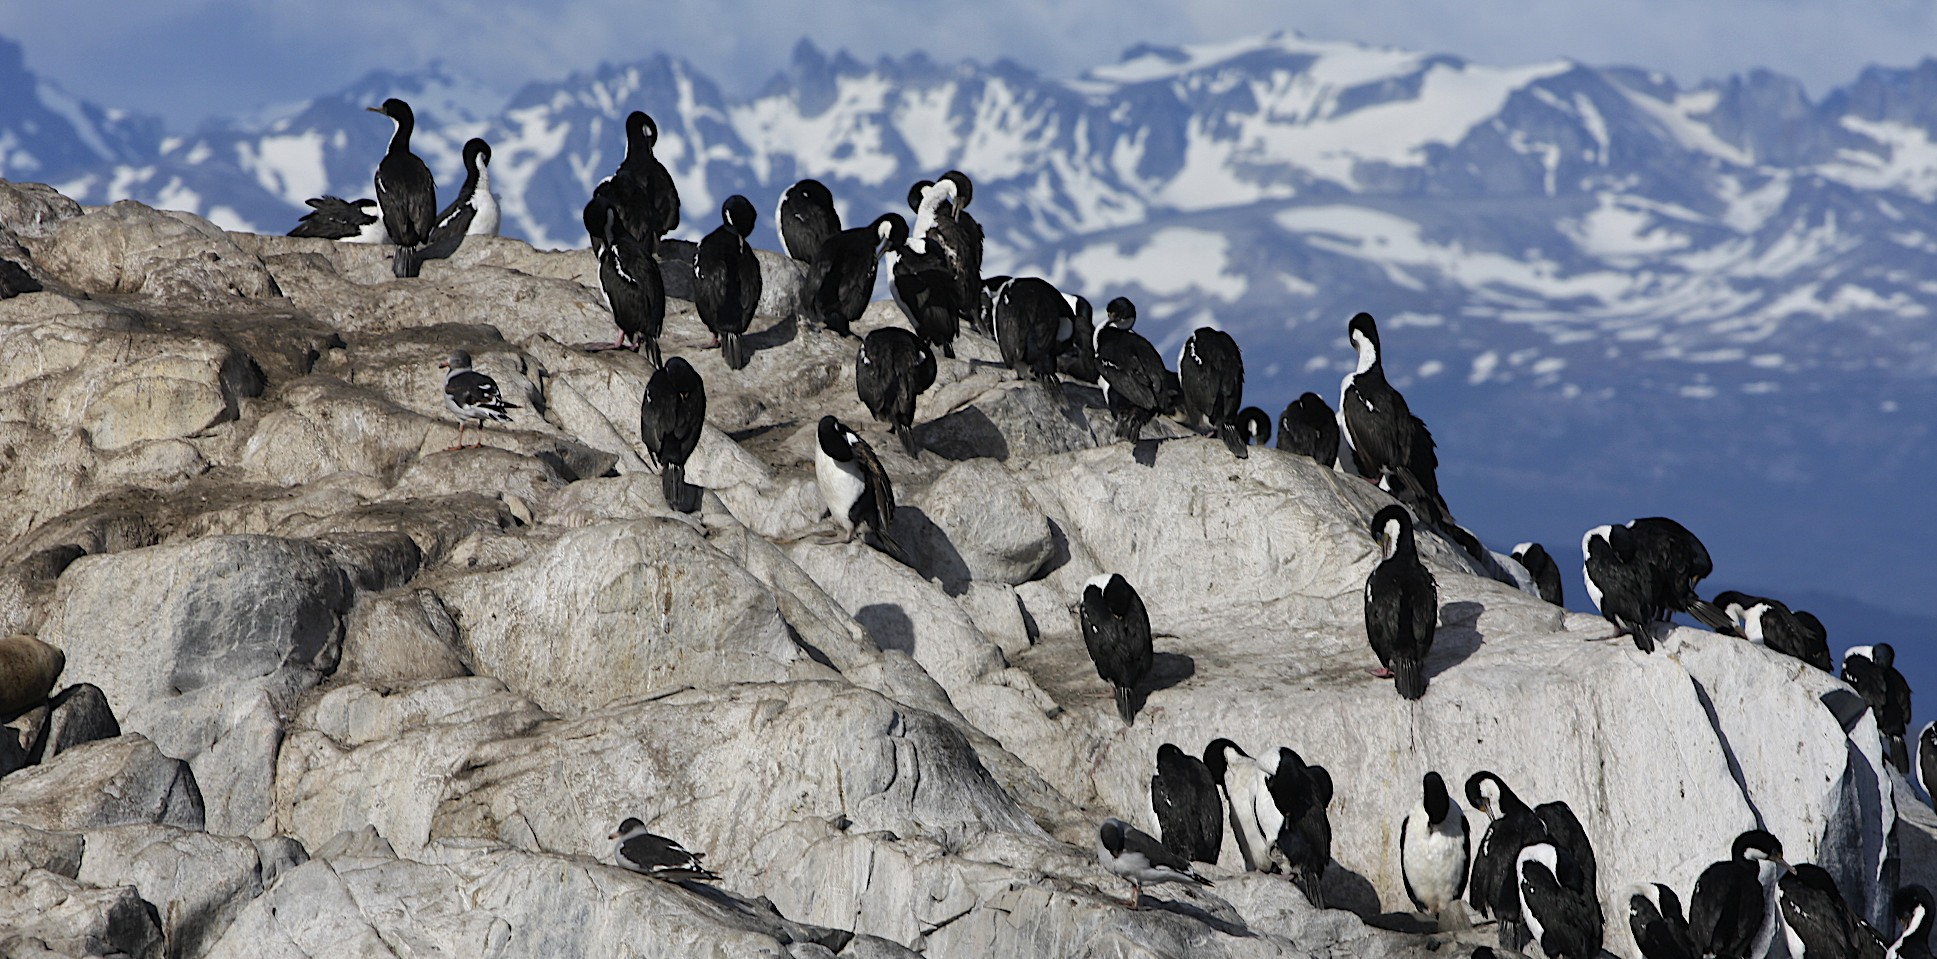 Mountains of Patagonia and the cormorants of the Beagle Channel